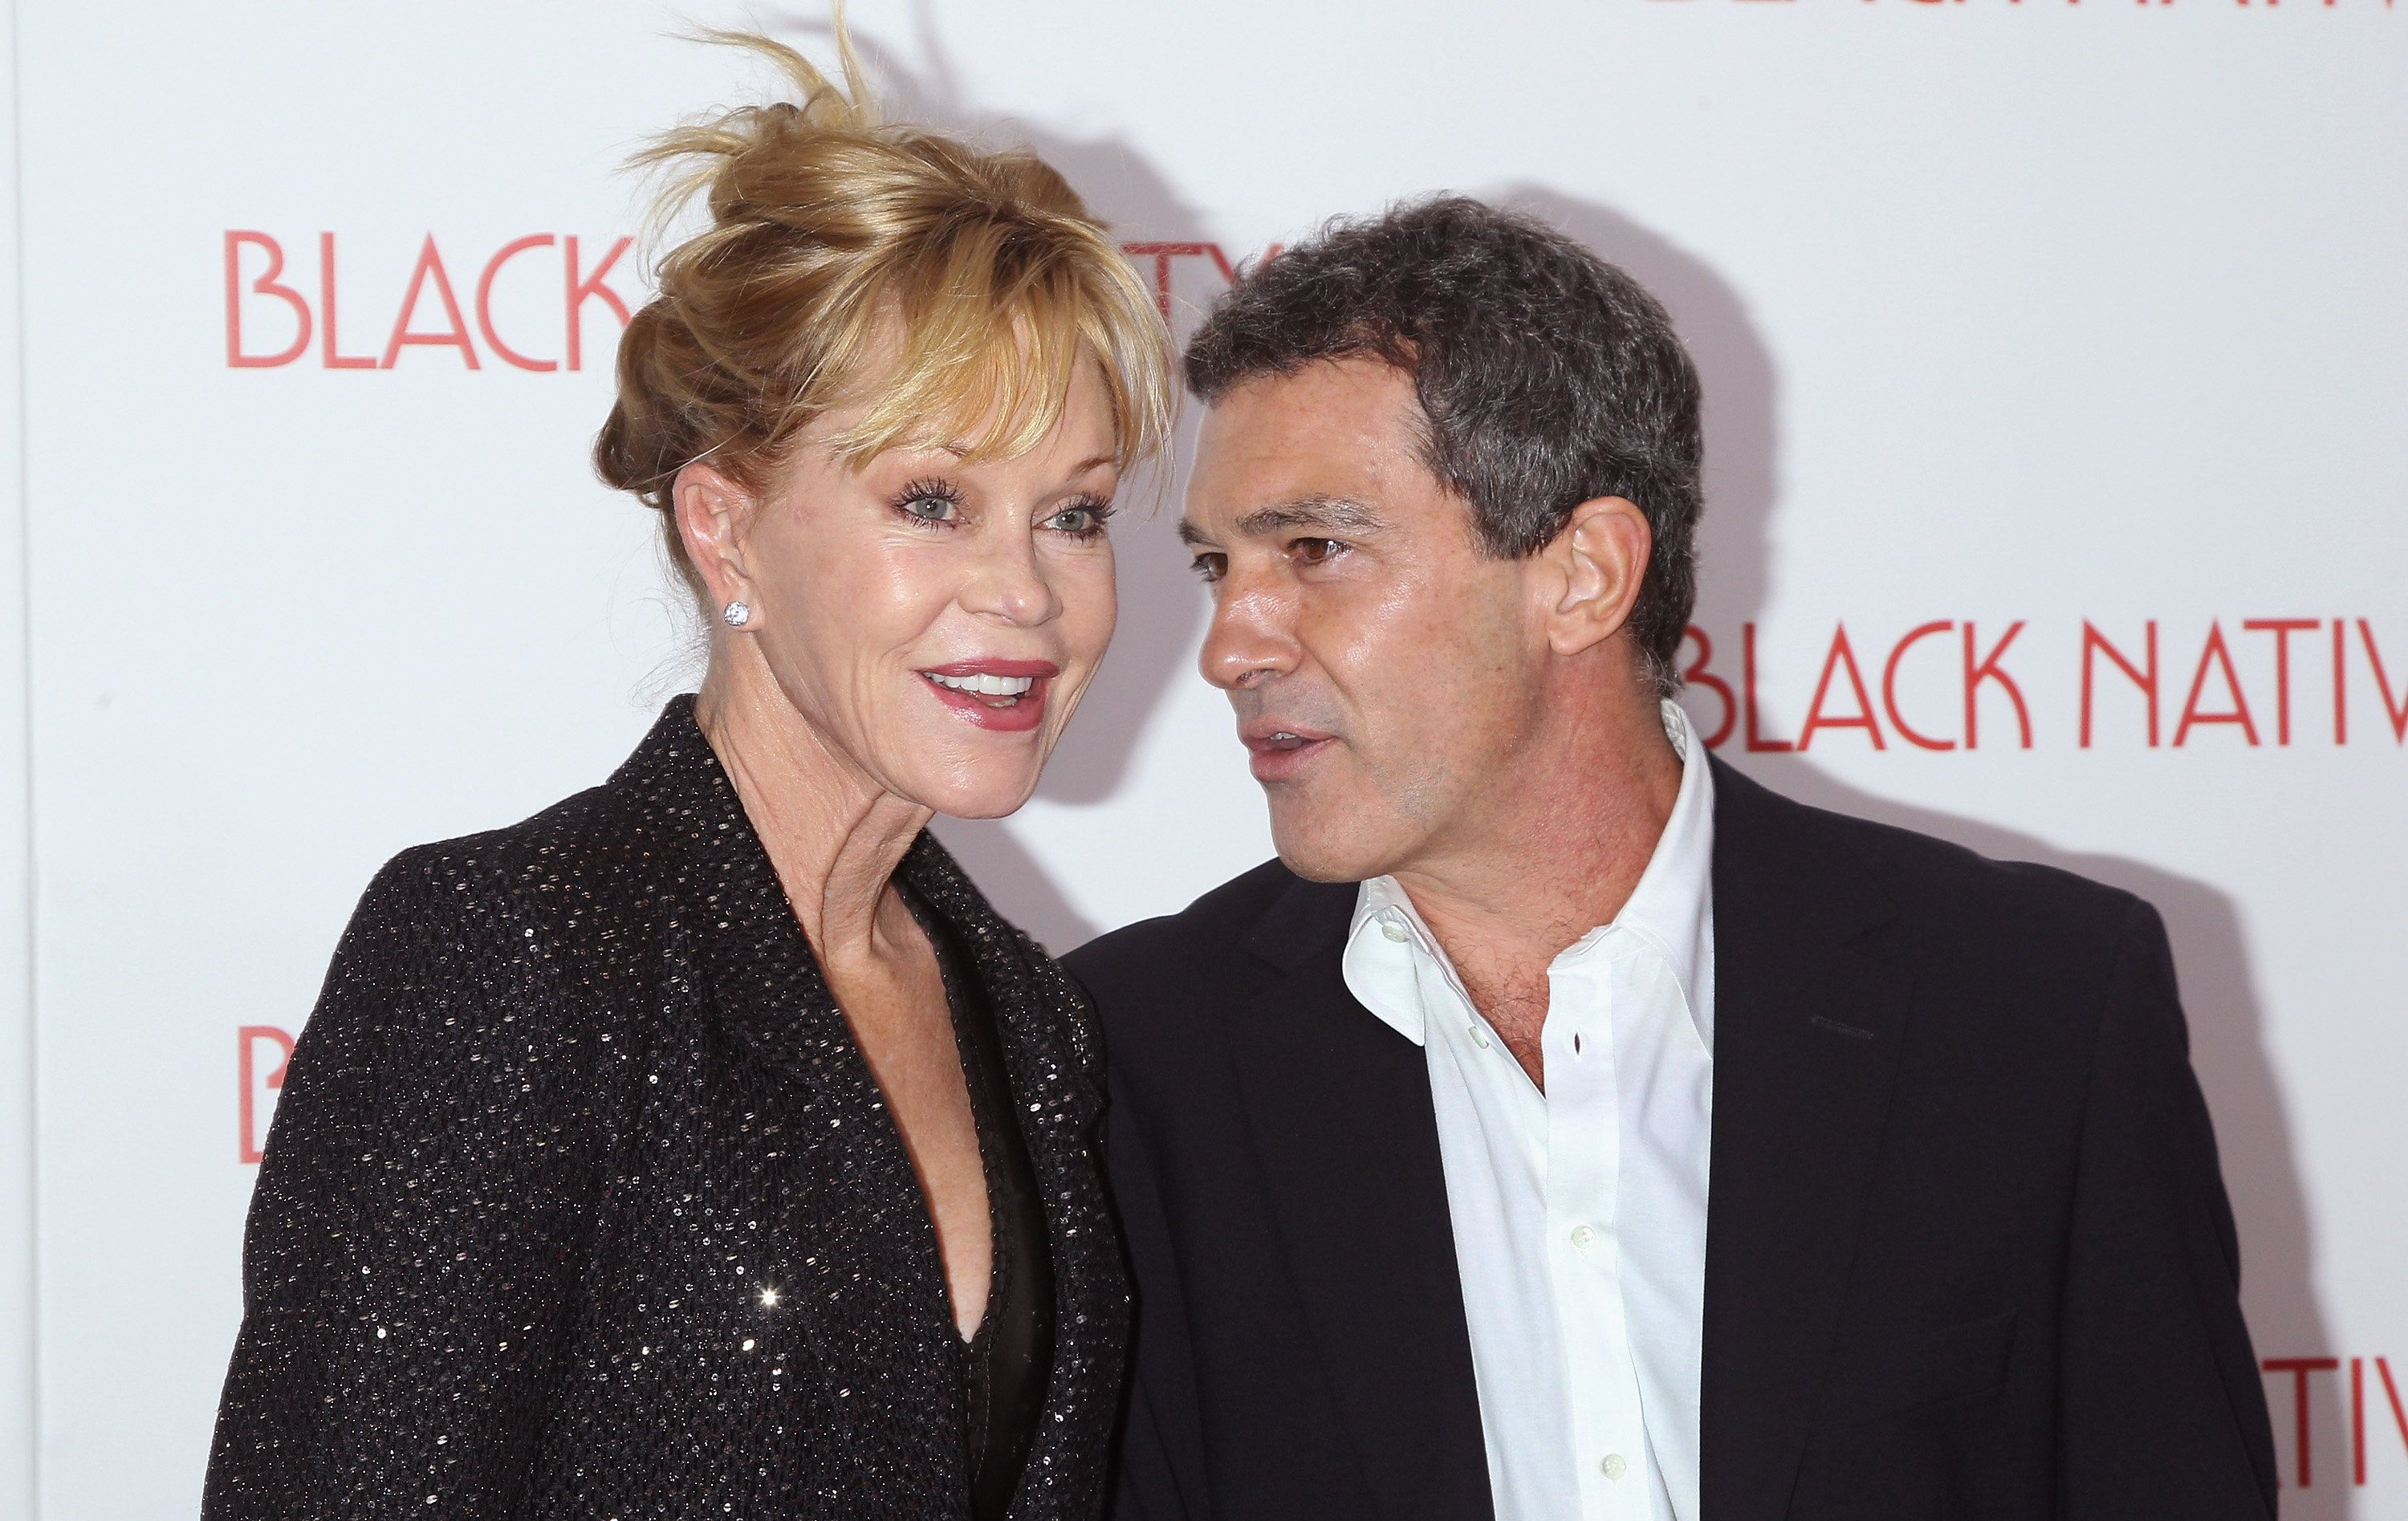 NEW YORK, NY - NOVEMBER 18:  Actors Melanie Griffith and Antonio Banderas attend the 'Black Nativity' premiere at The Apollo Theater on November 18, 2013 in New York City.  (Photo by Jim Spellman/WireImage)